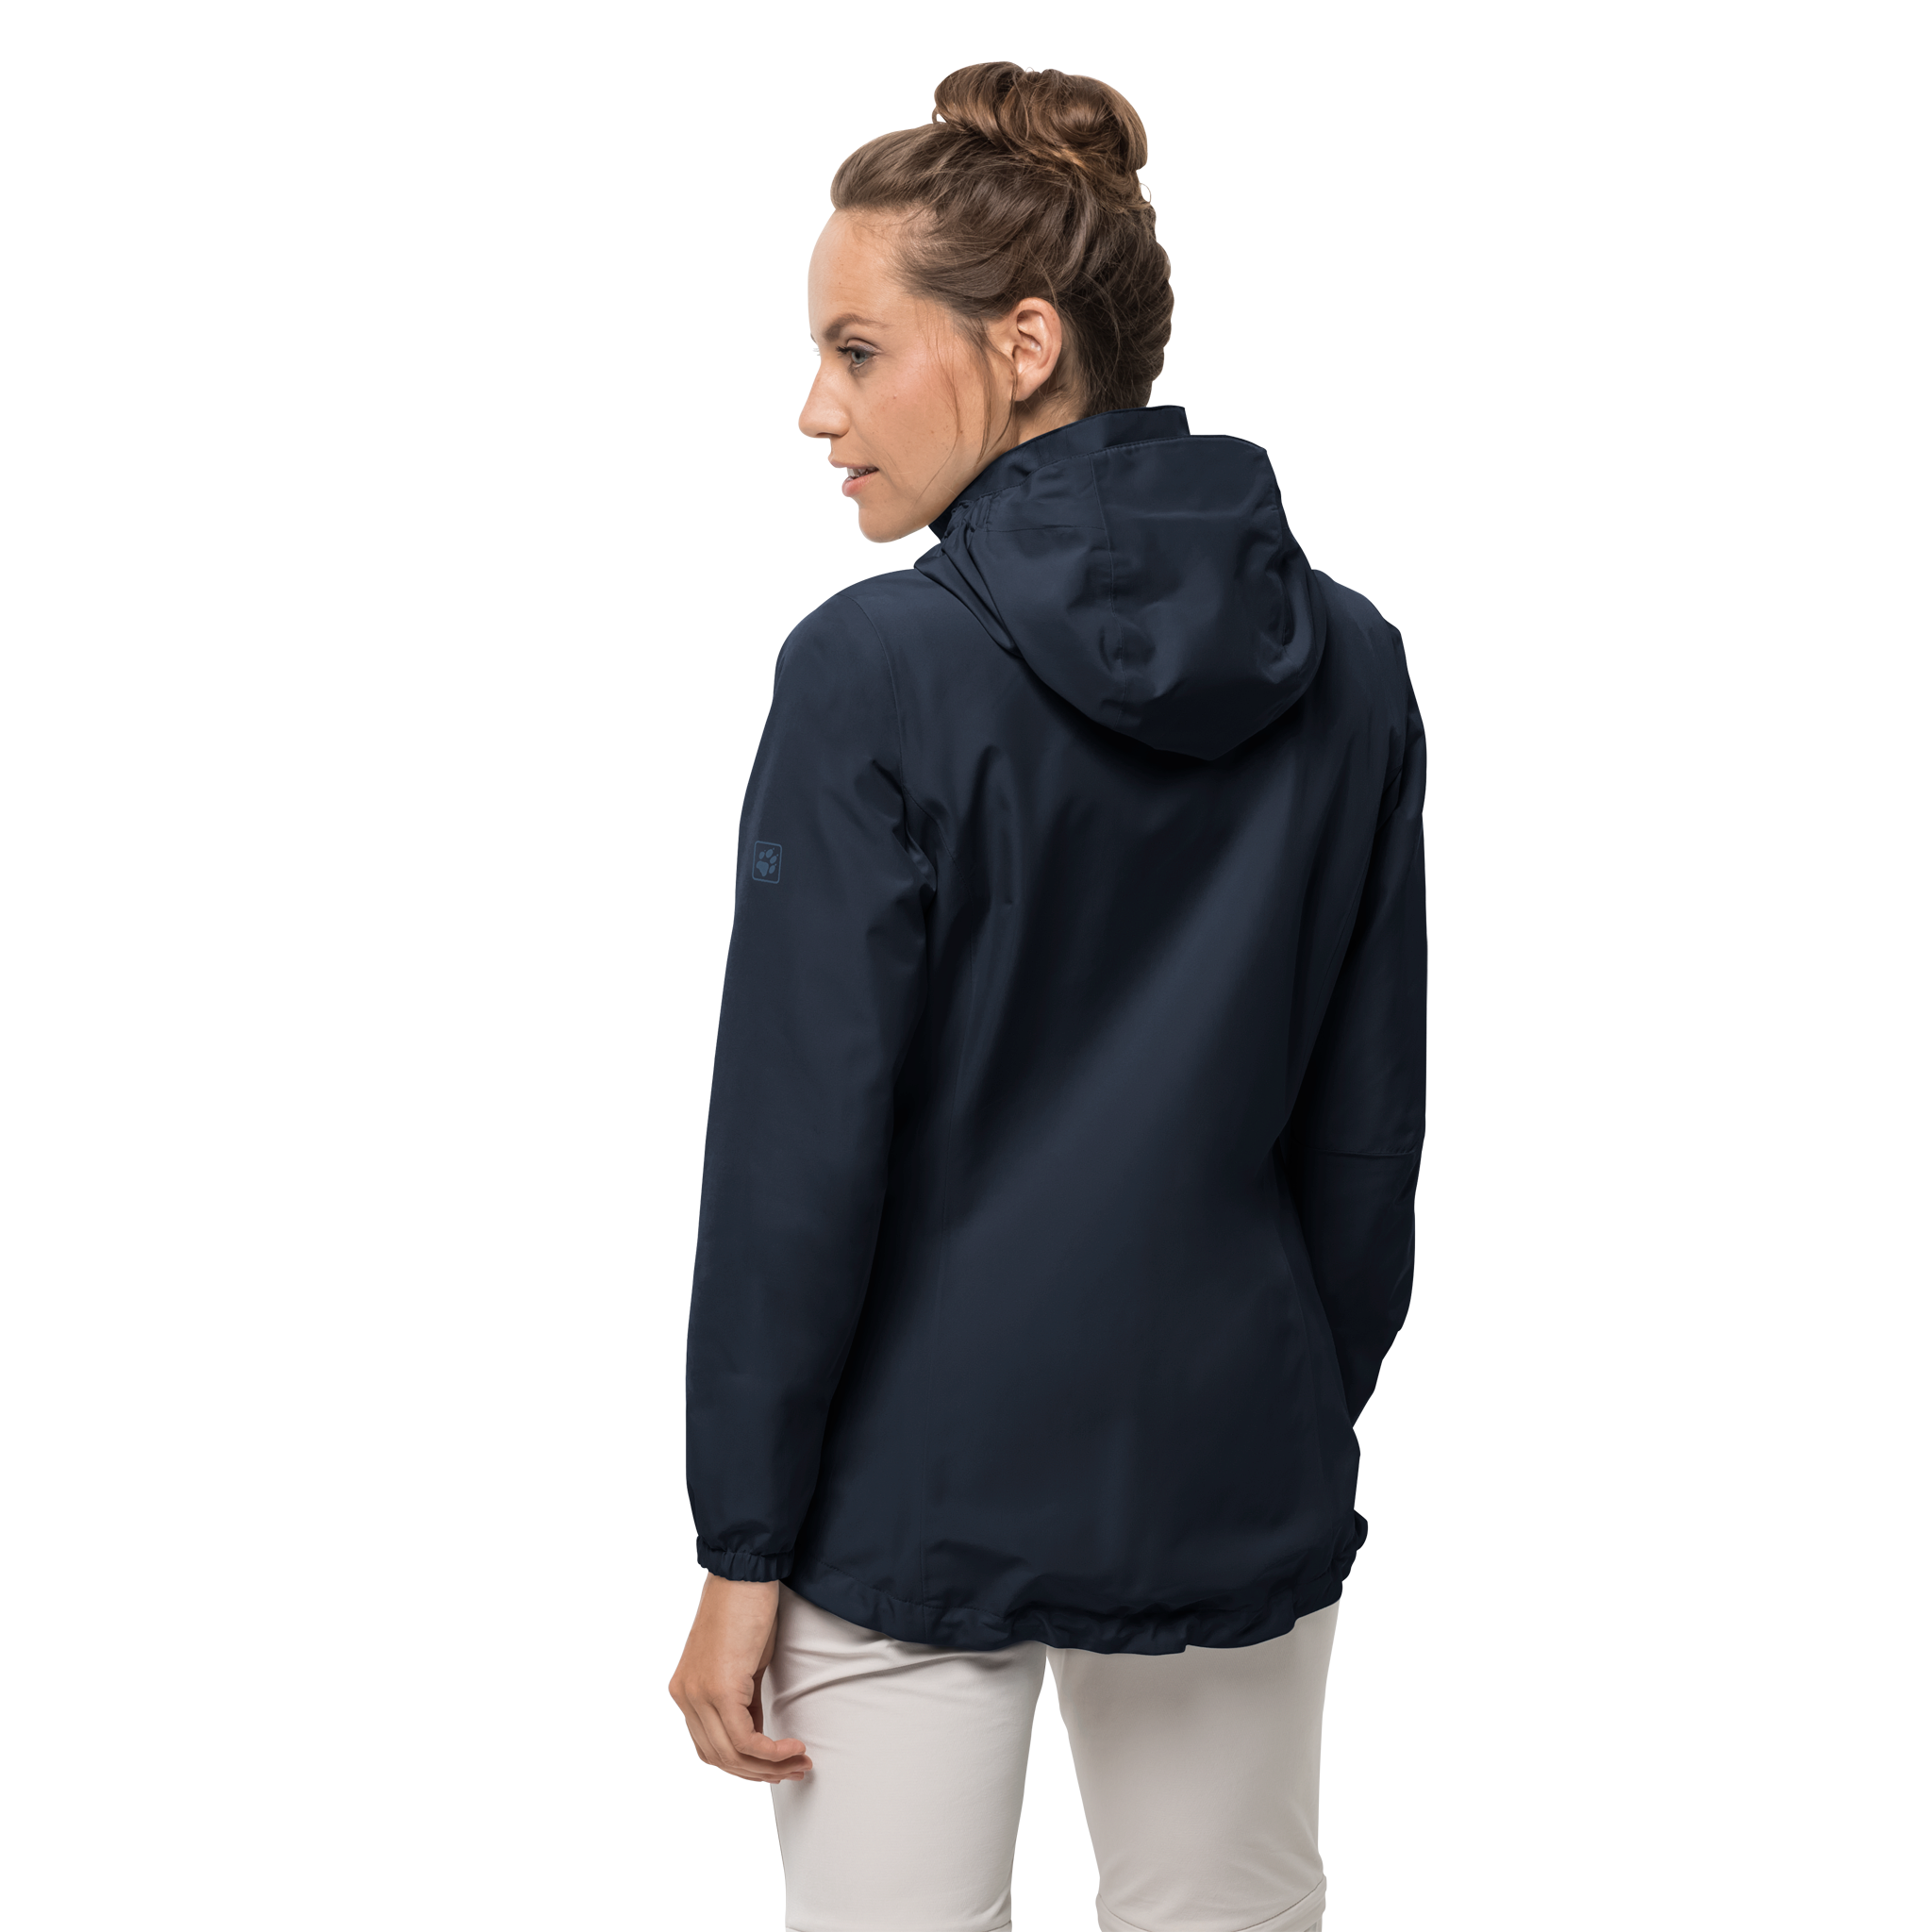 Jack Wolfskin Stormy Point Jacket for Ladies in Midnight Blue